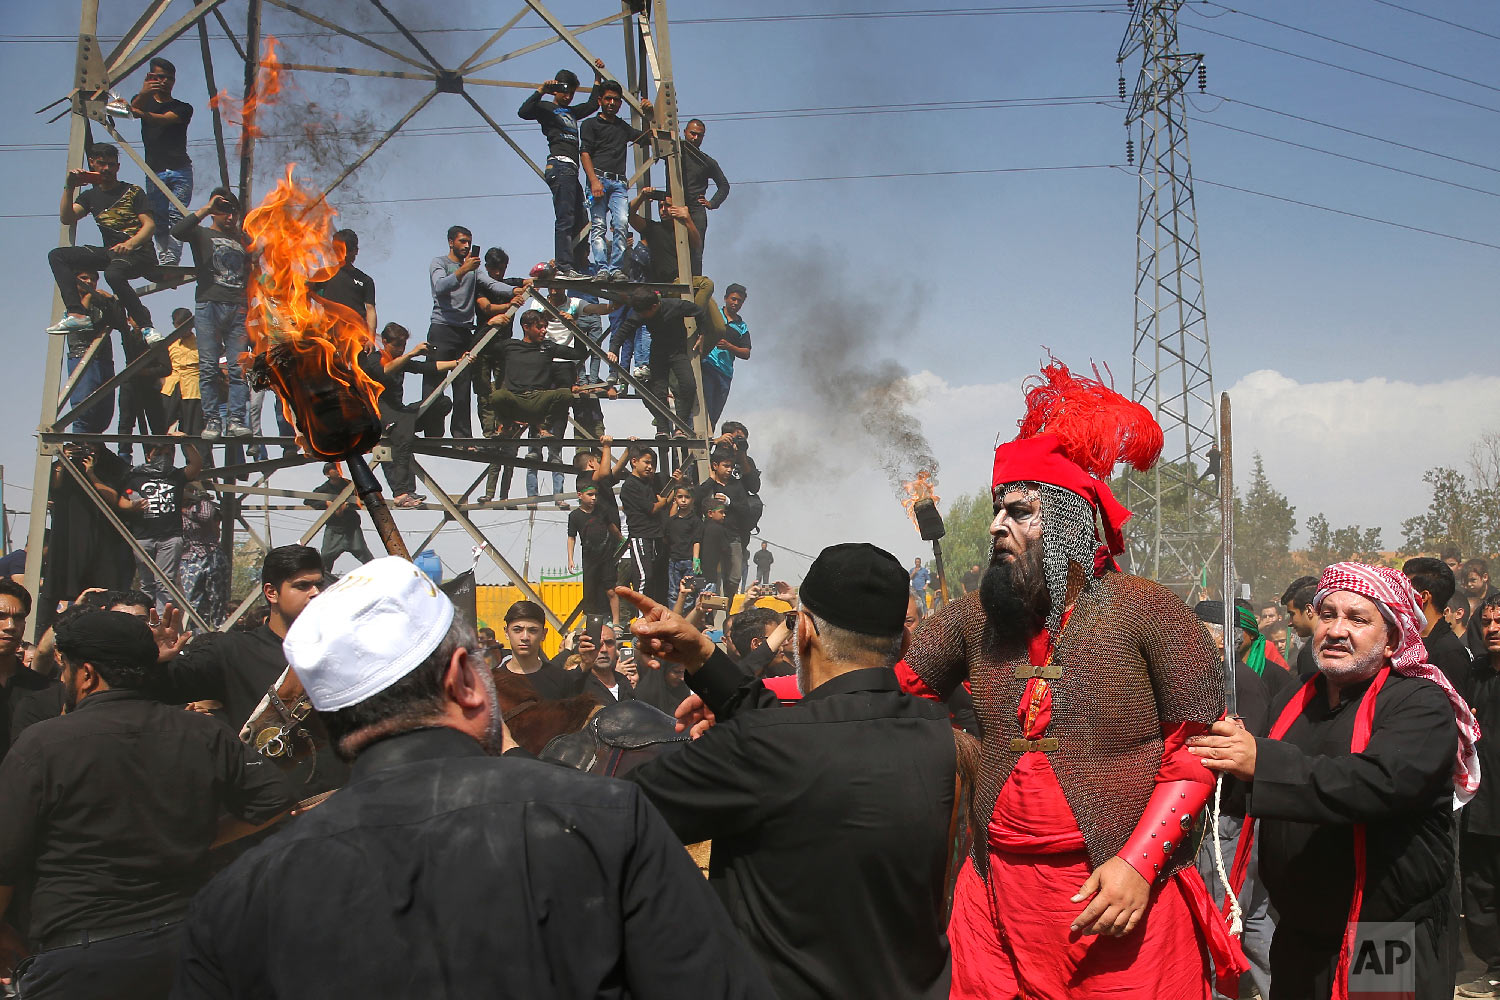 Shiites in costumes re-enact events of Ashoura while Iranian and Iraqi Shiite Muslims mourn in a procession, in southern Tehran, Iran, Sept 20, 2018. (AP Photo/Ebrahim Noroozi)